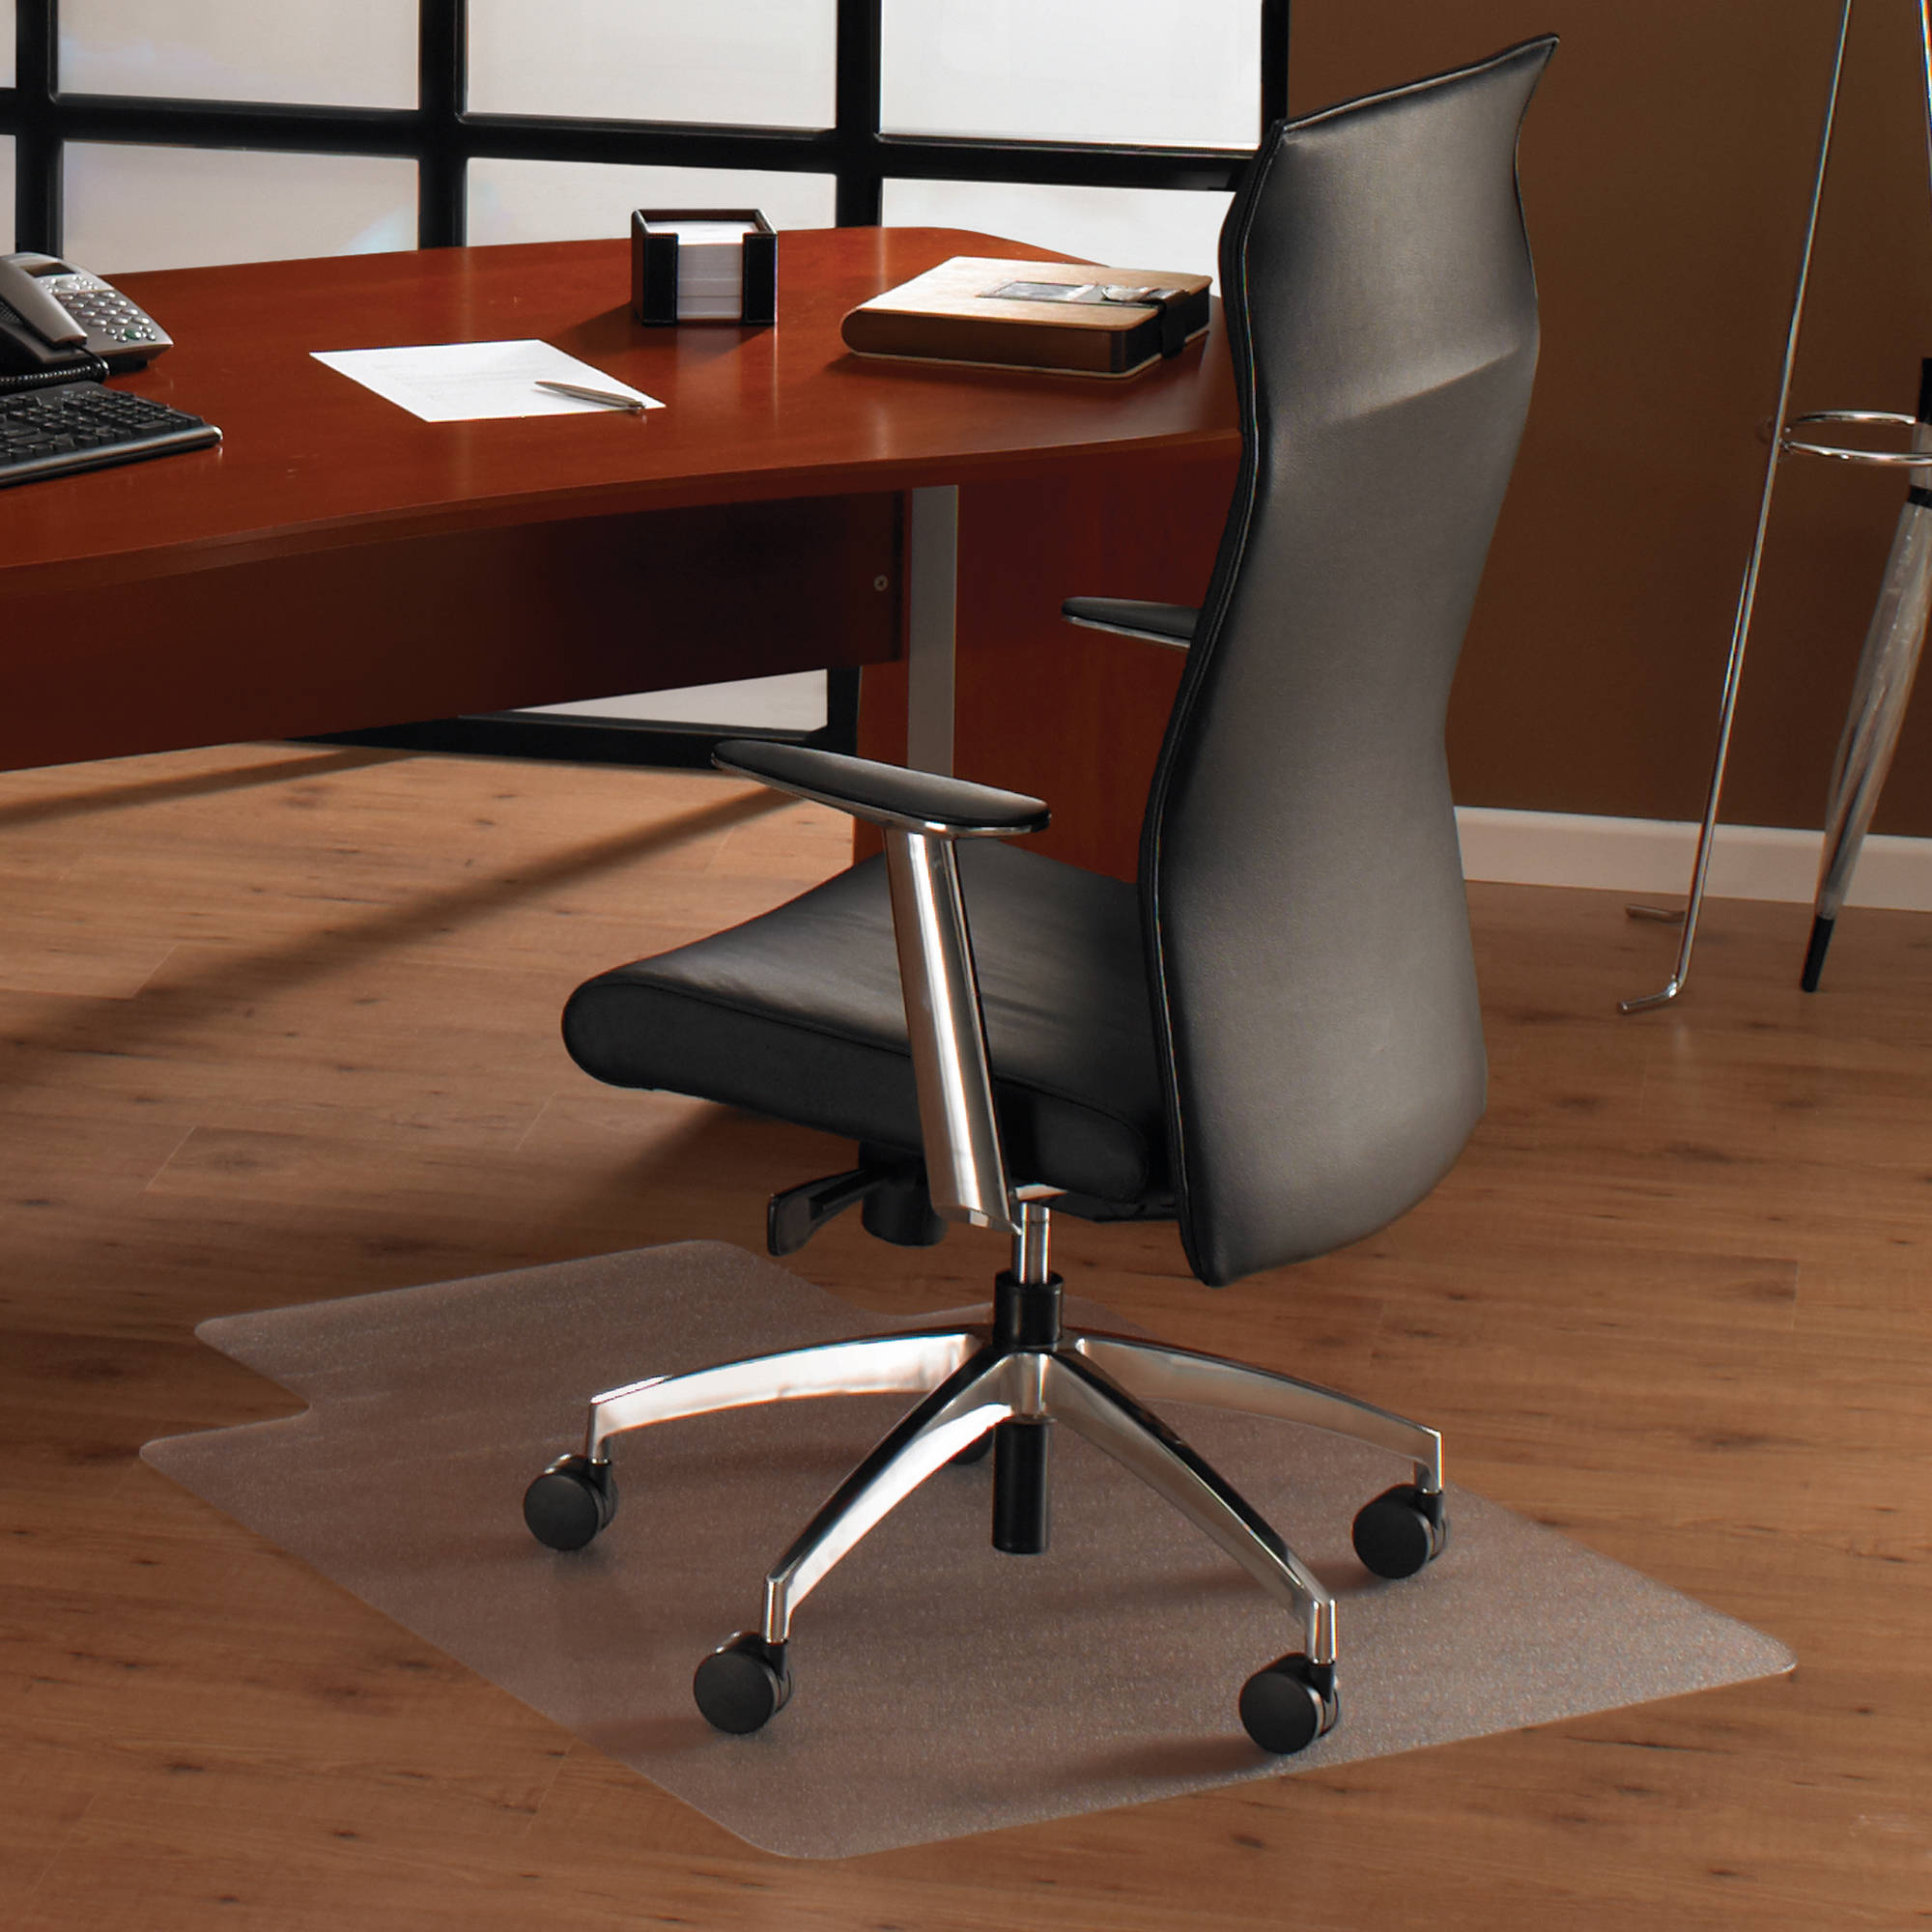 Floortex Cleartex Ultimat 35 x 47 Chair Mat for Low and Medium